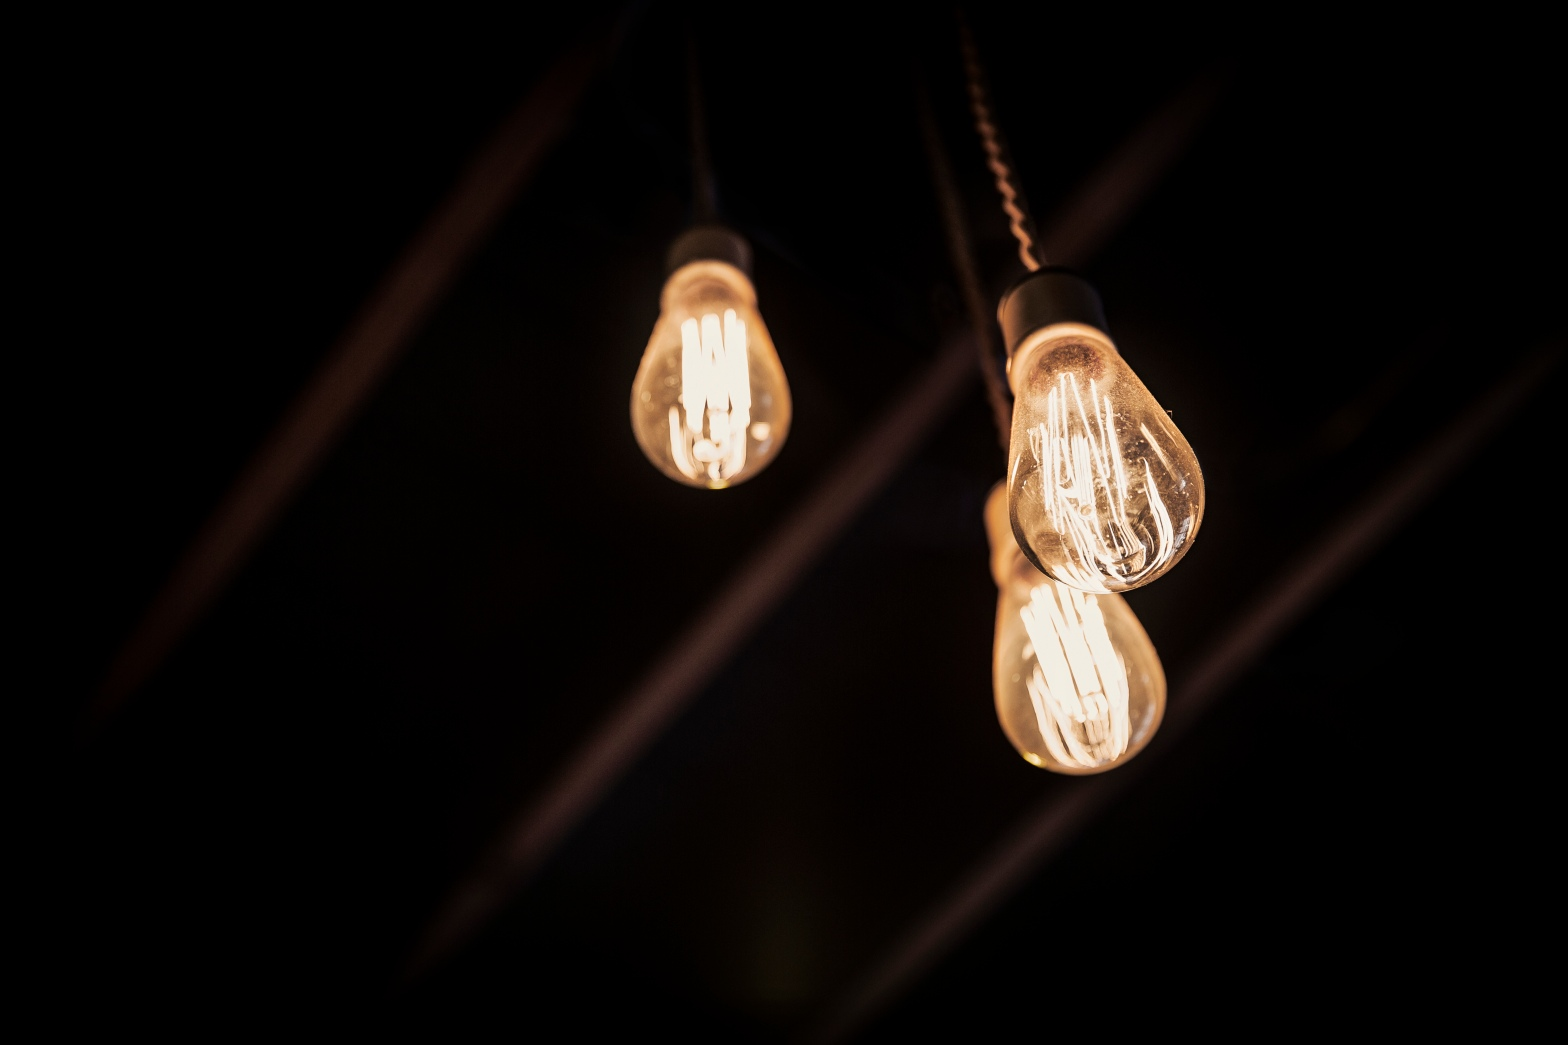 lightbulb - smart ideas